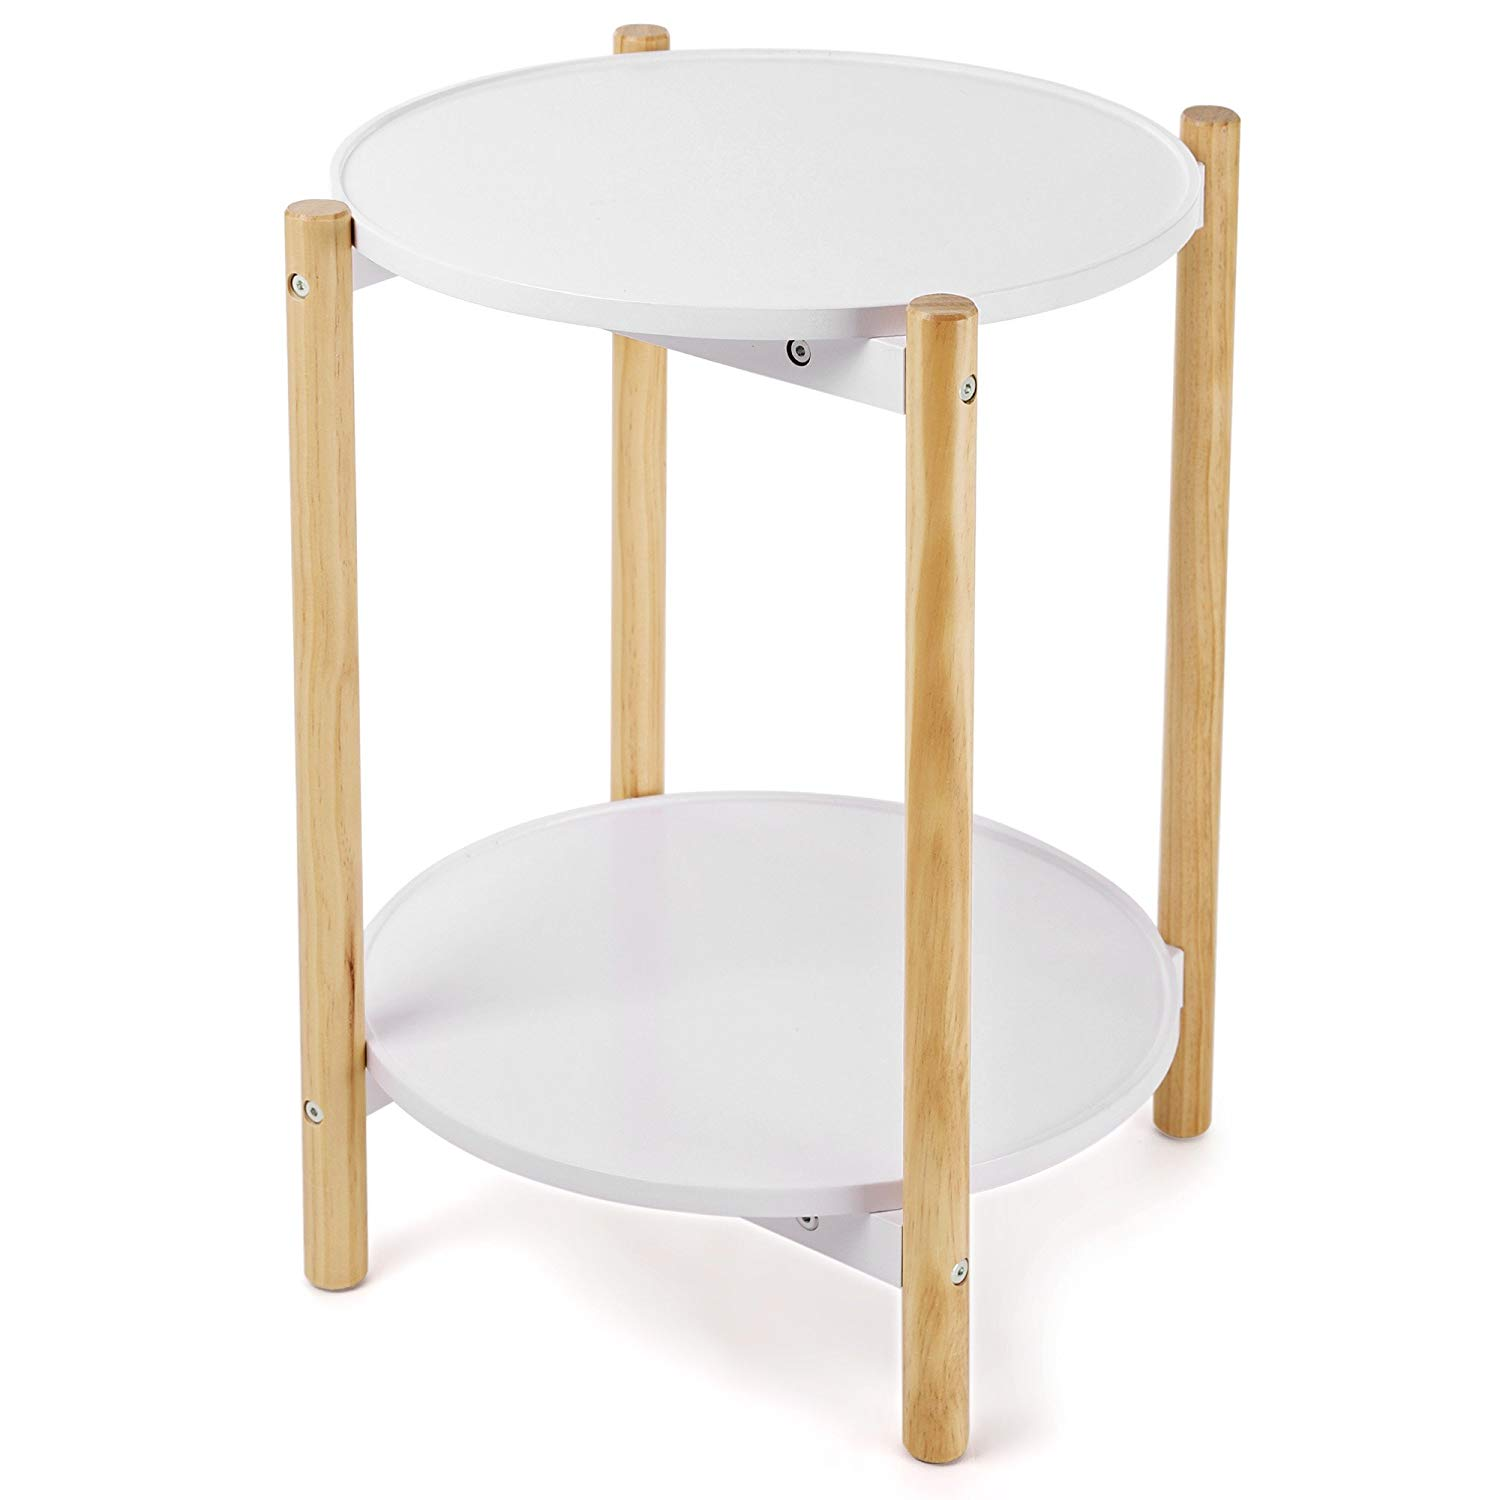 shades small plus outdoor lamp target centerpieces accent table round nursery redmond ott decor and living furniture top room threshold lighting ideas gold contemporary mini